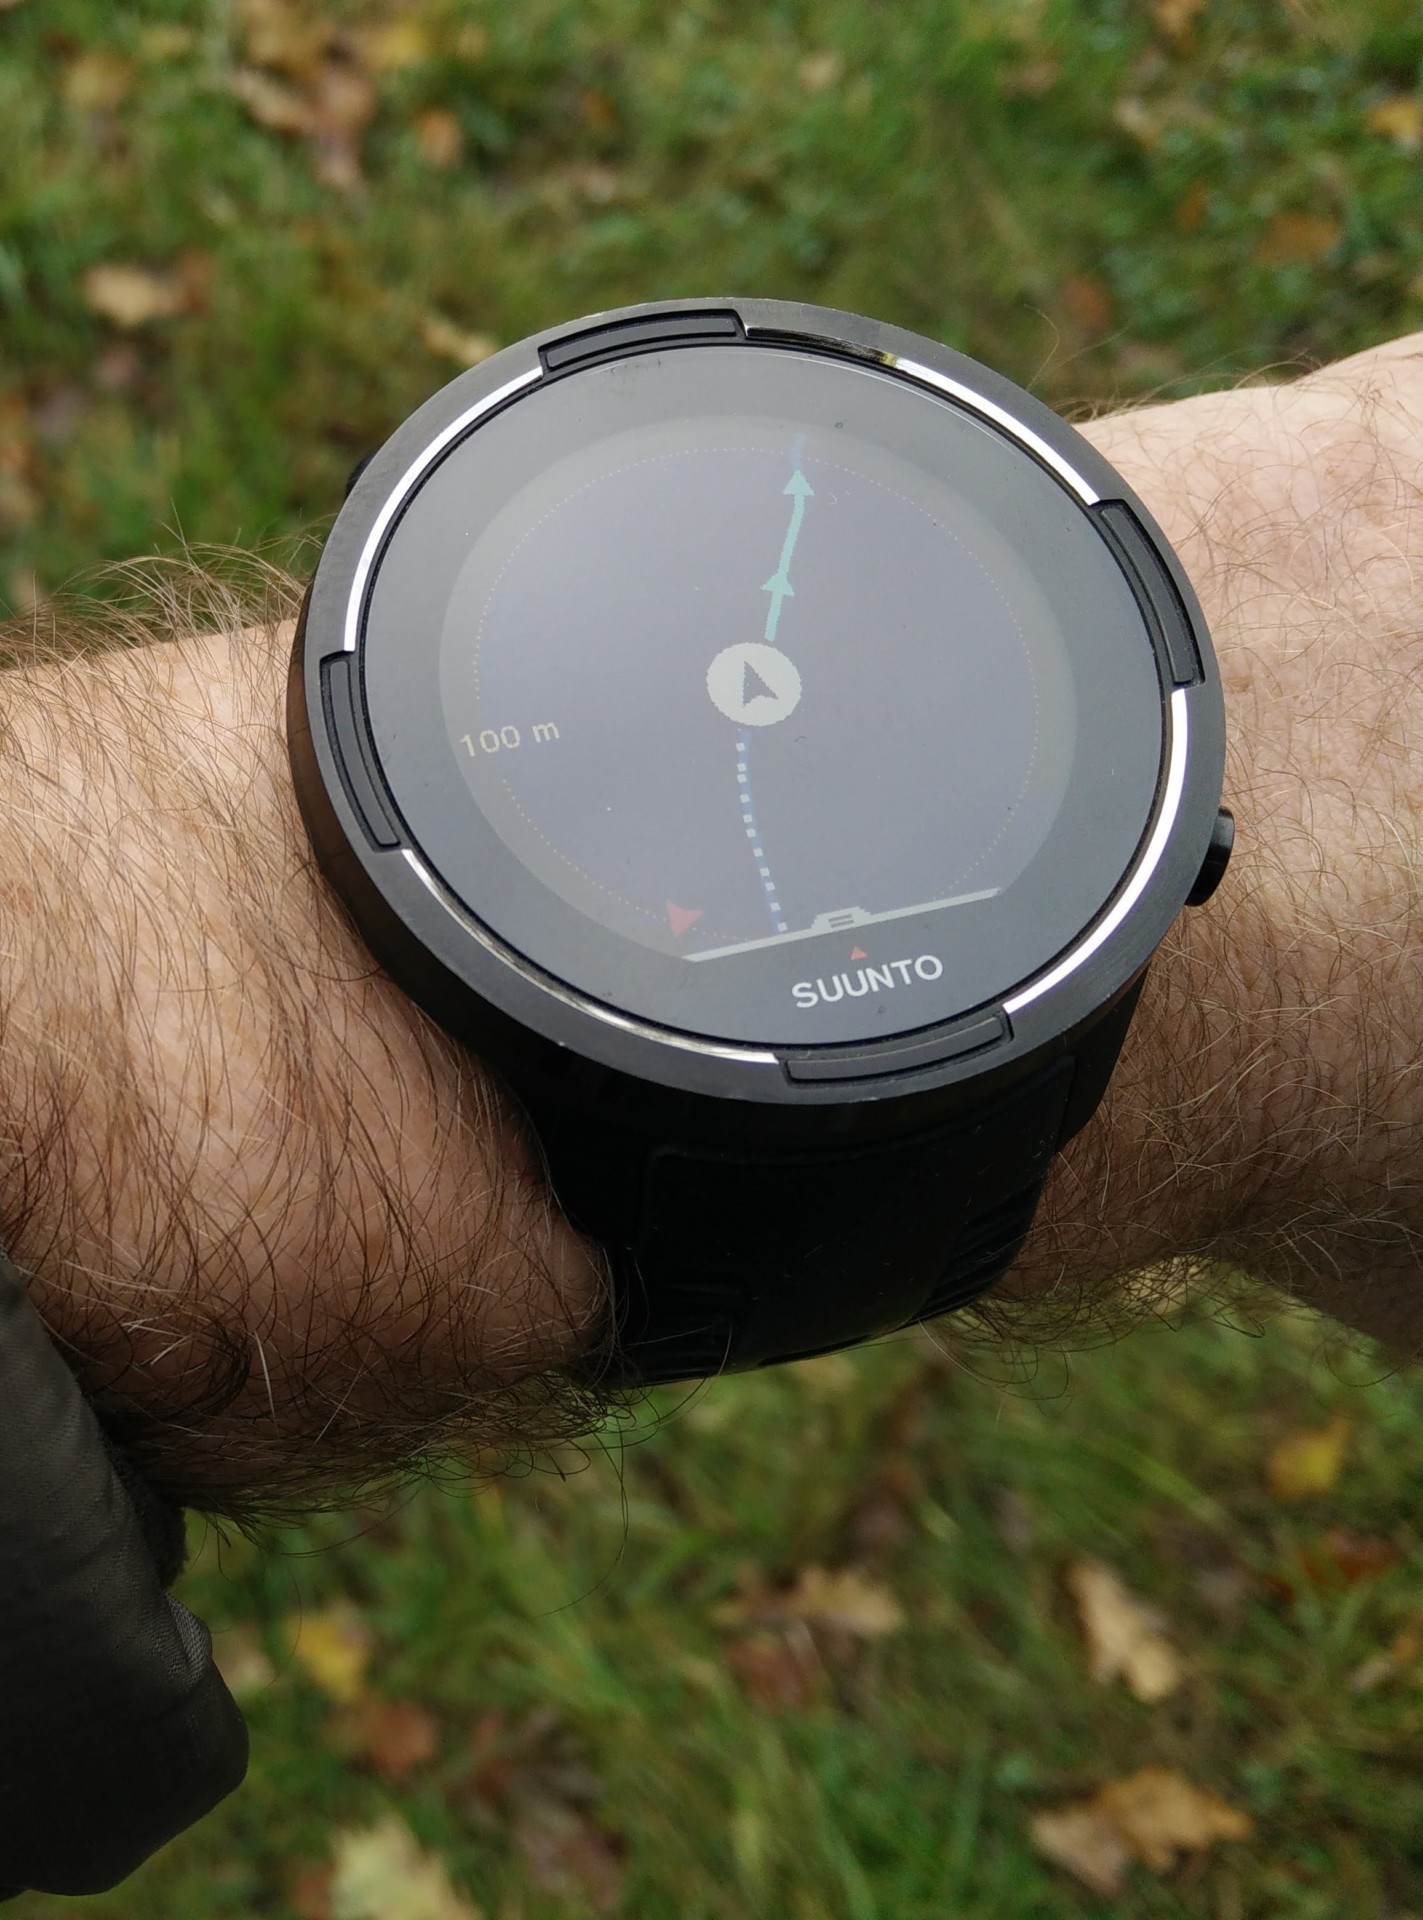 Suunto Route Planning: How to do it on PC without Movescount?